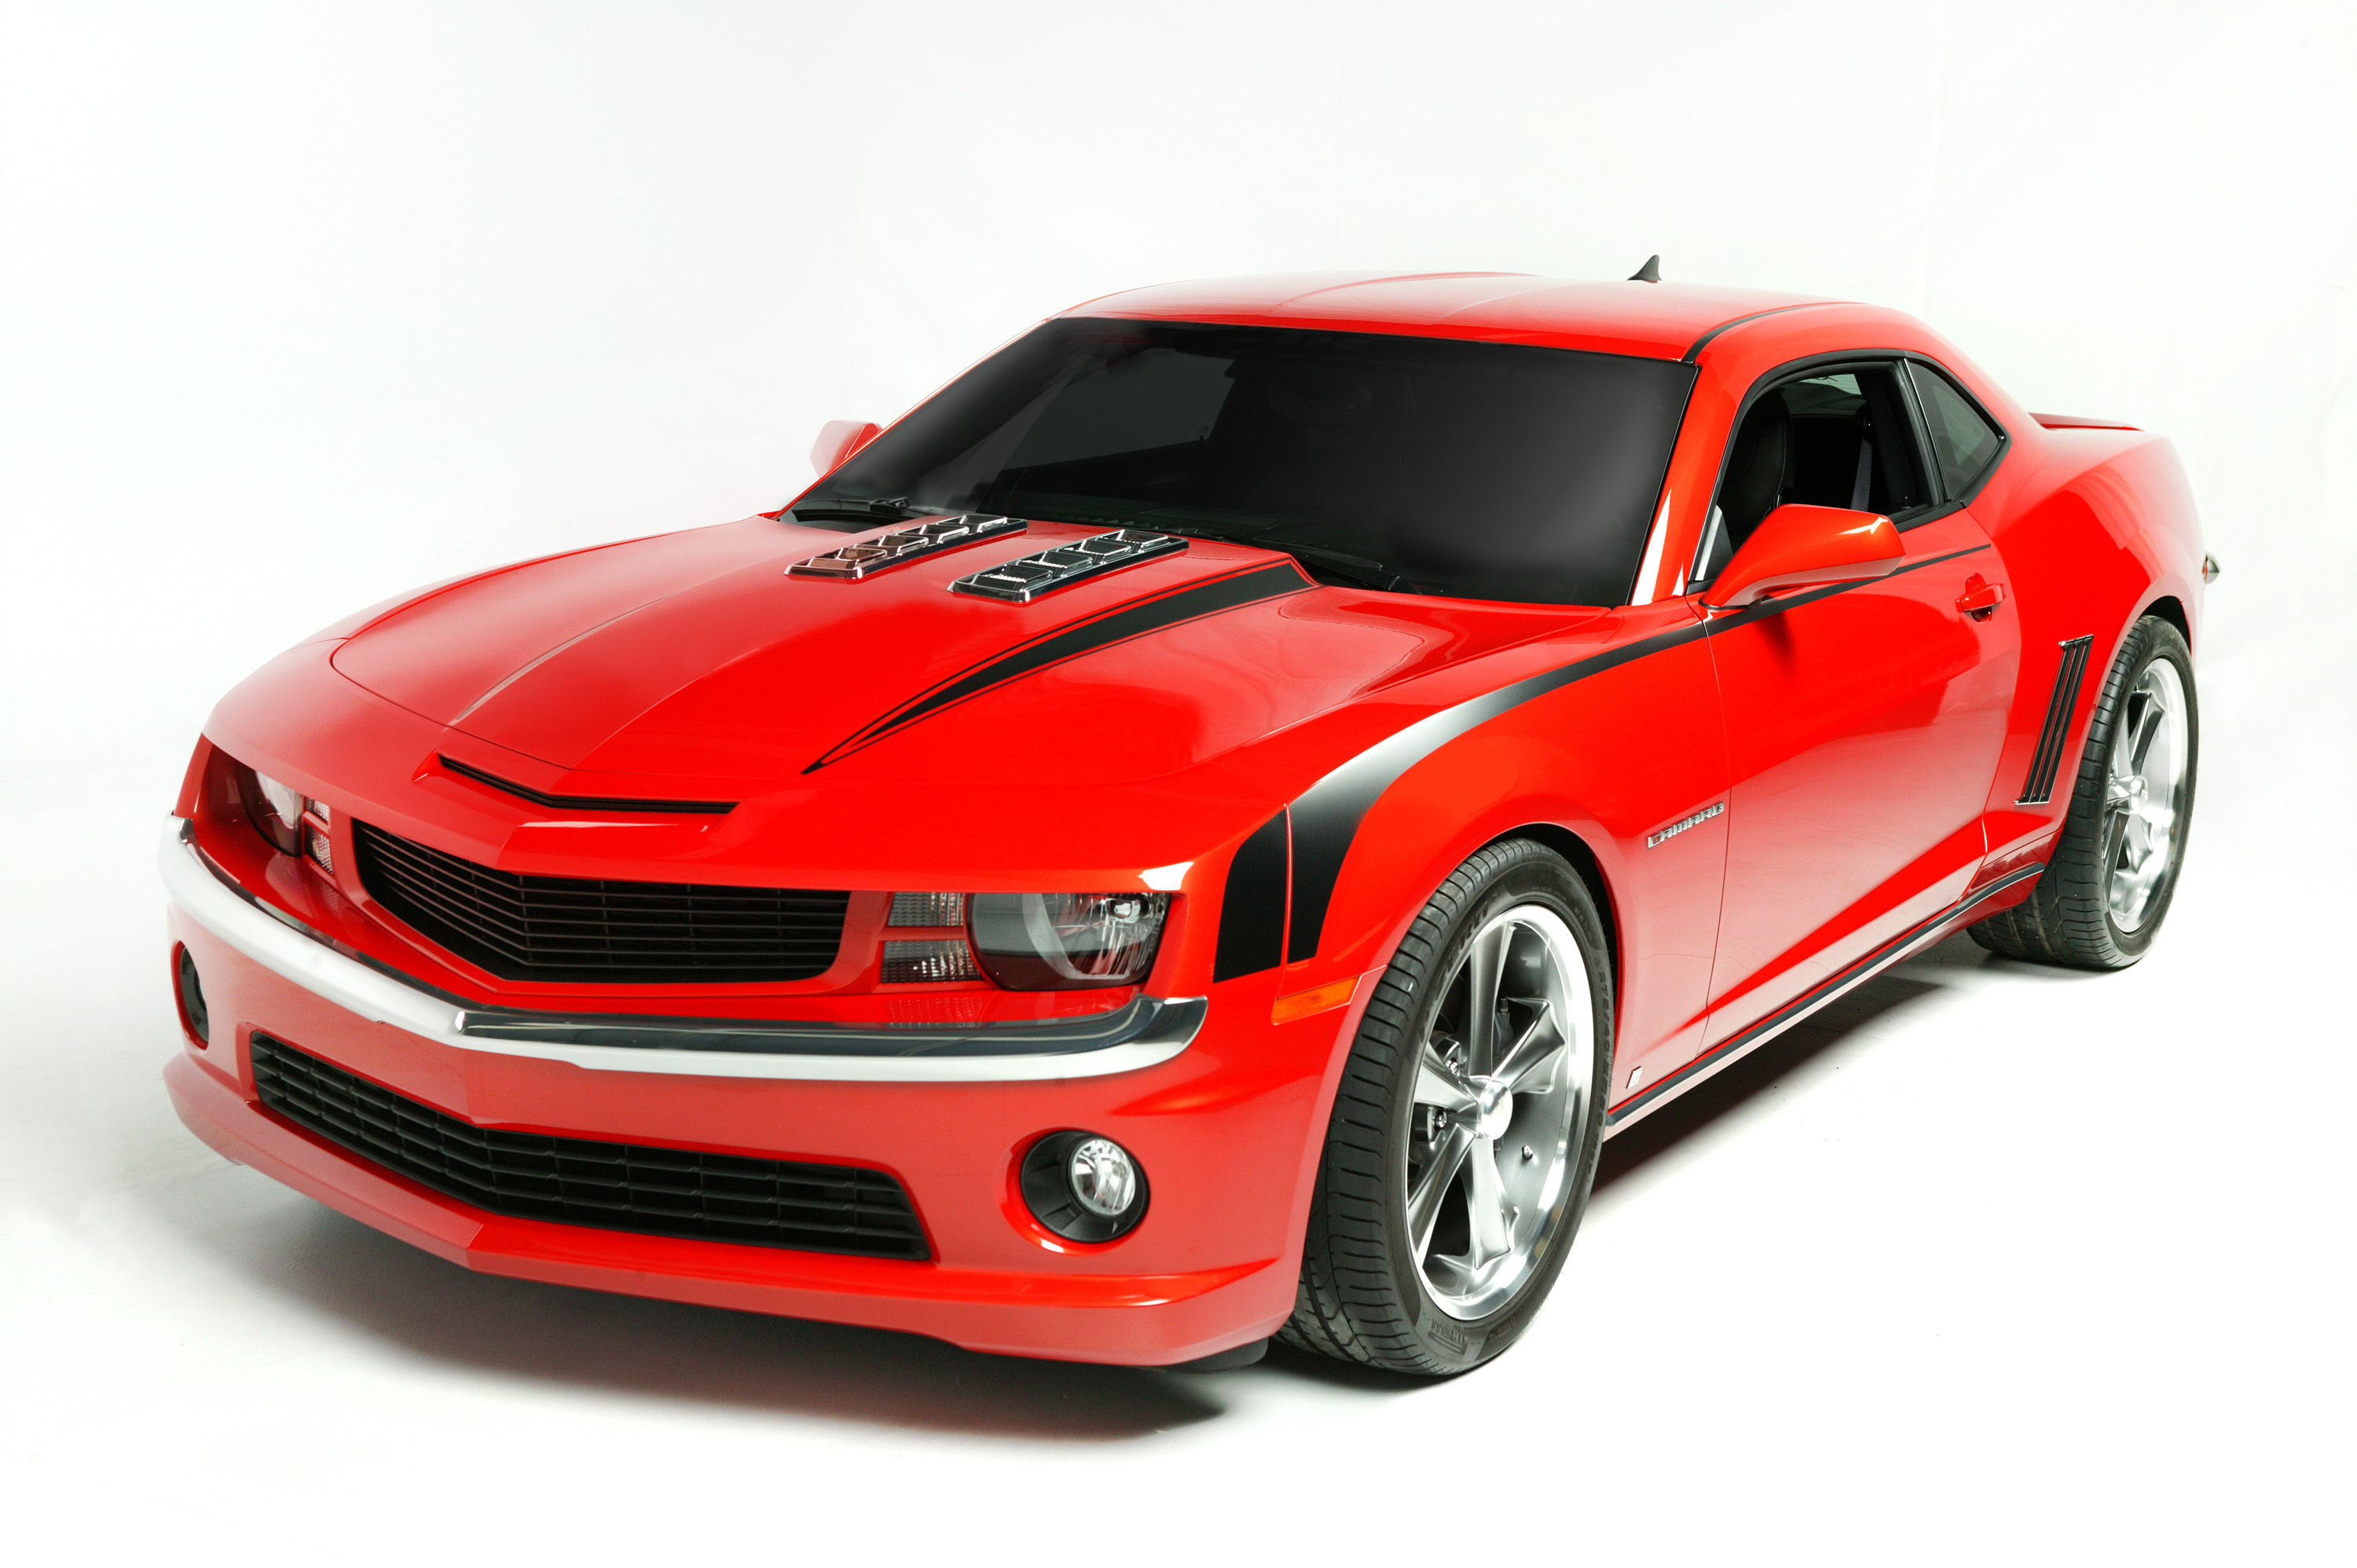 camaro color store buy yellow coupon online now jbox holiday special chevrolet the retrousa to accessories use our product in savenow photo a